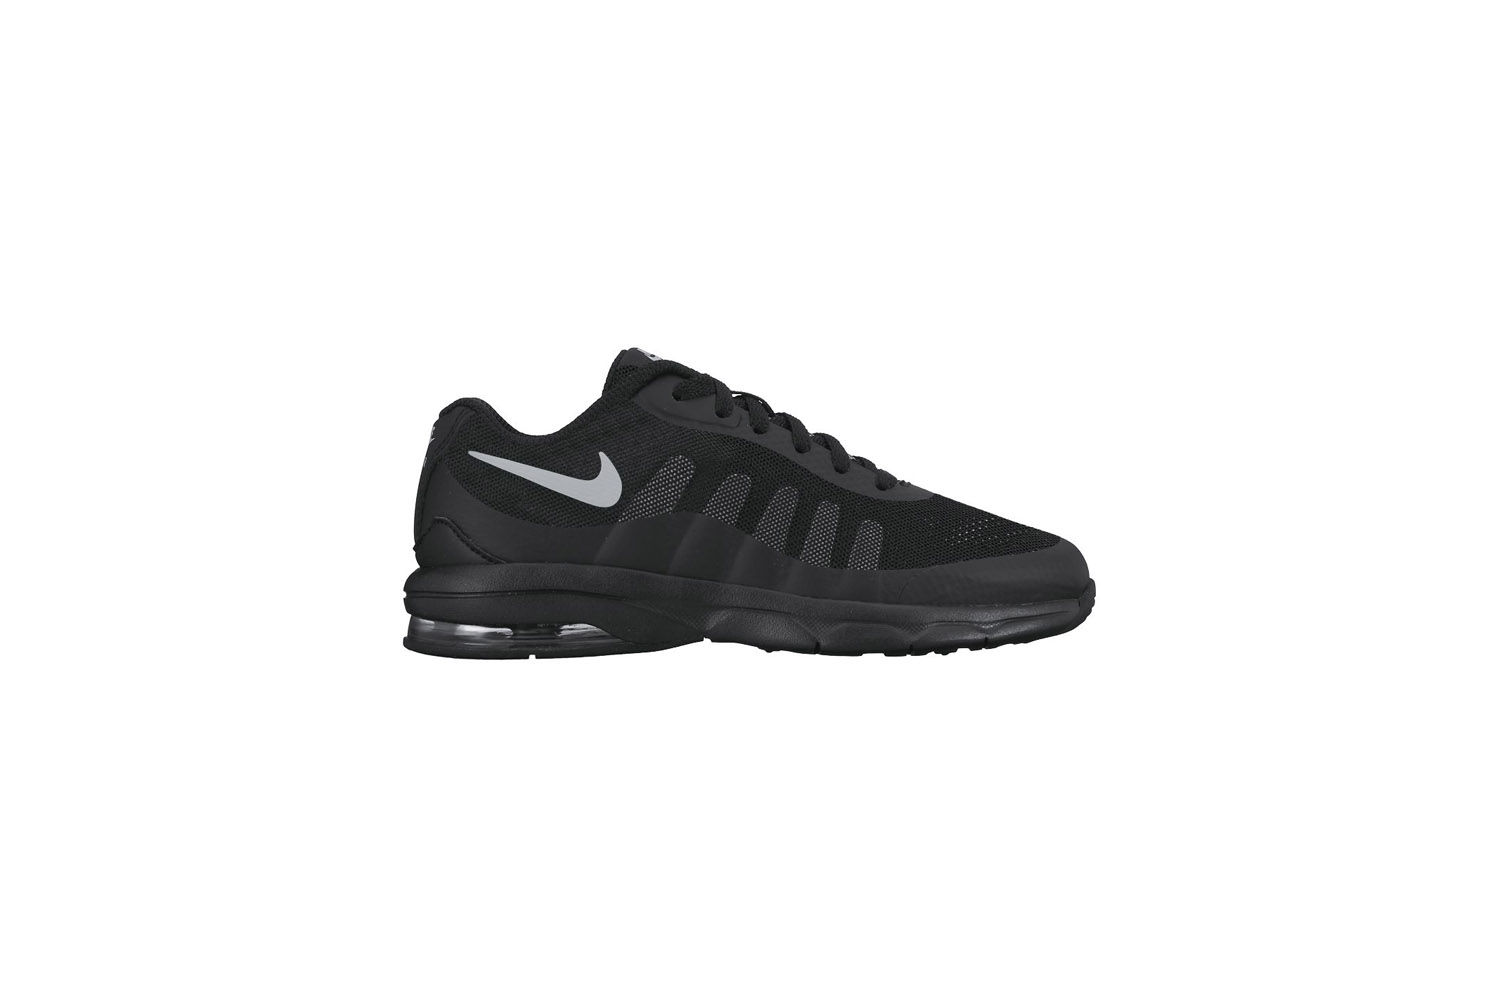 ce976f872cdd6 Nike Air Max Invigor PS Bambini - NIKE AS - Anaclerico Sport